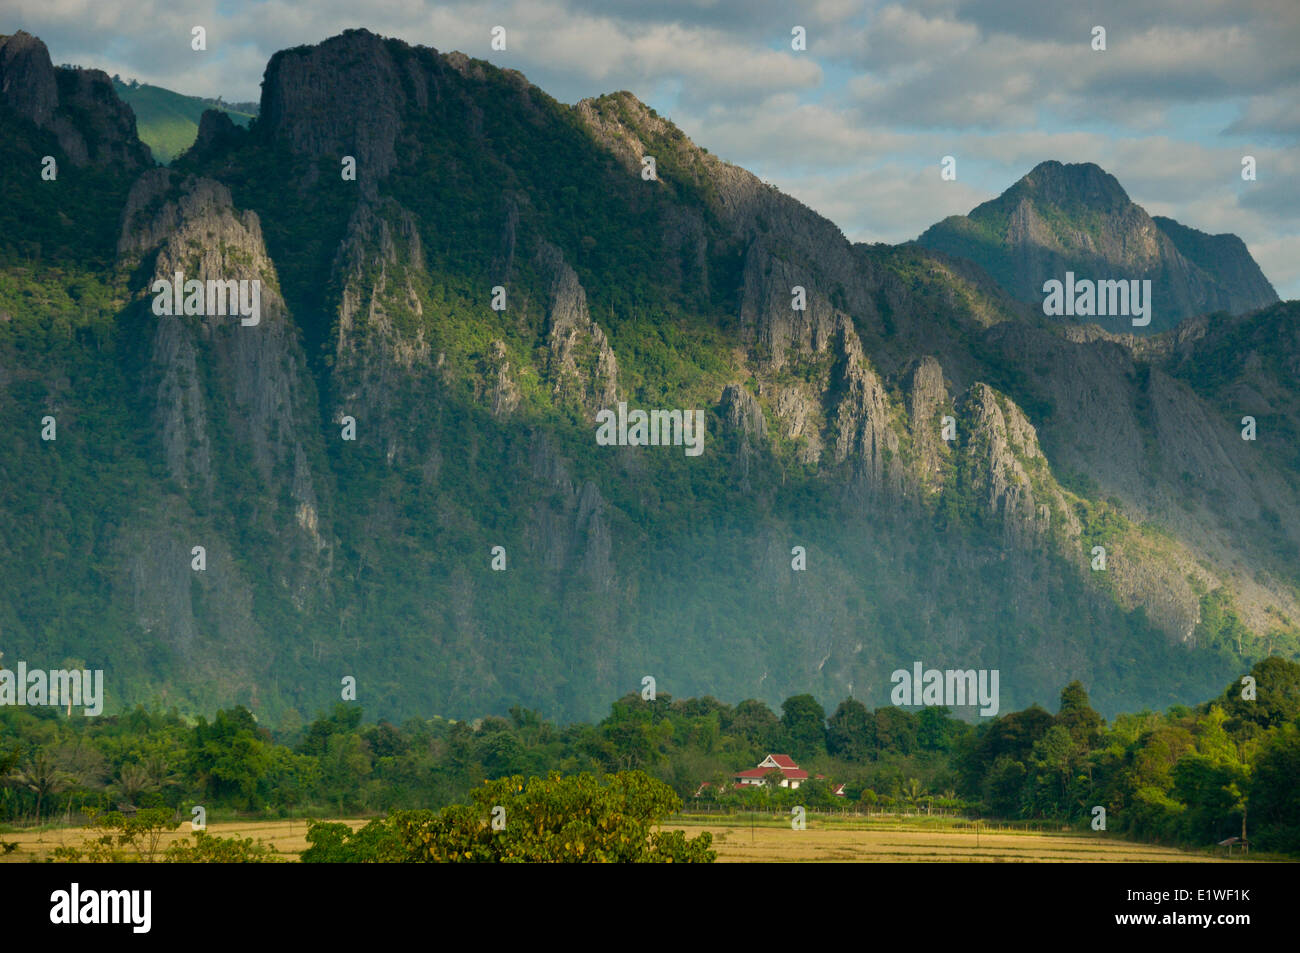 Mountainsides in rural Laos near the town of Vang Vieng - Stock Image